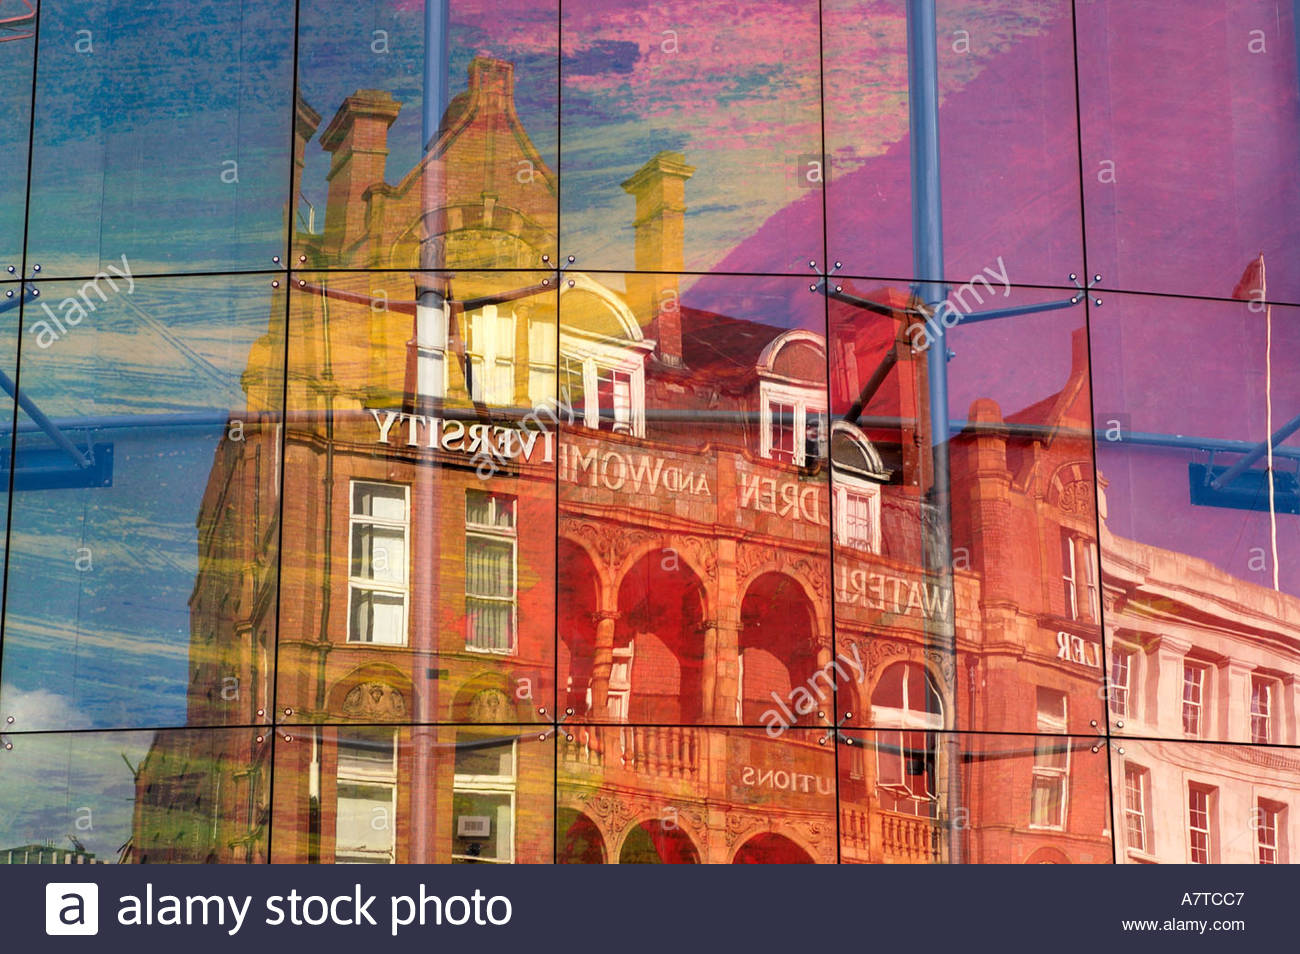 The Royal Waterloo hospital for Children and Women and the Schiller Universtiy building reflected in the curved glass wall of th - Stock Image